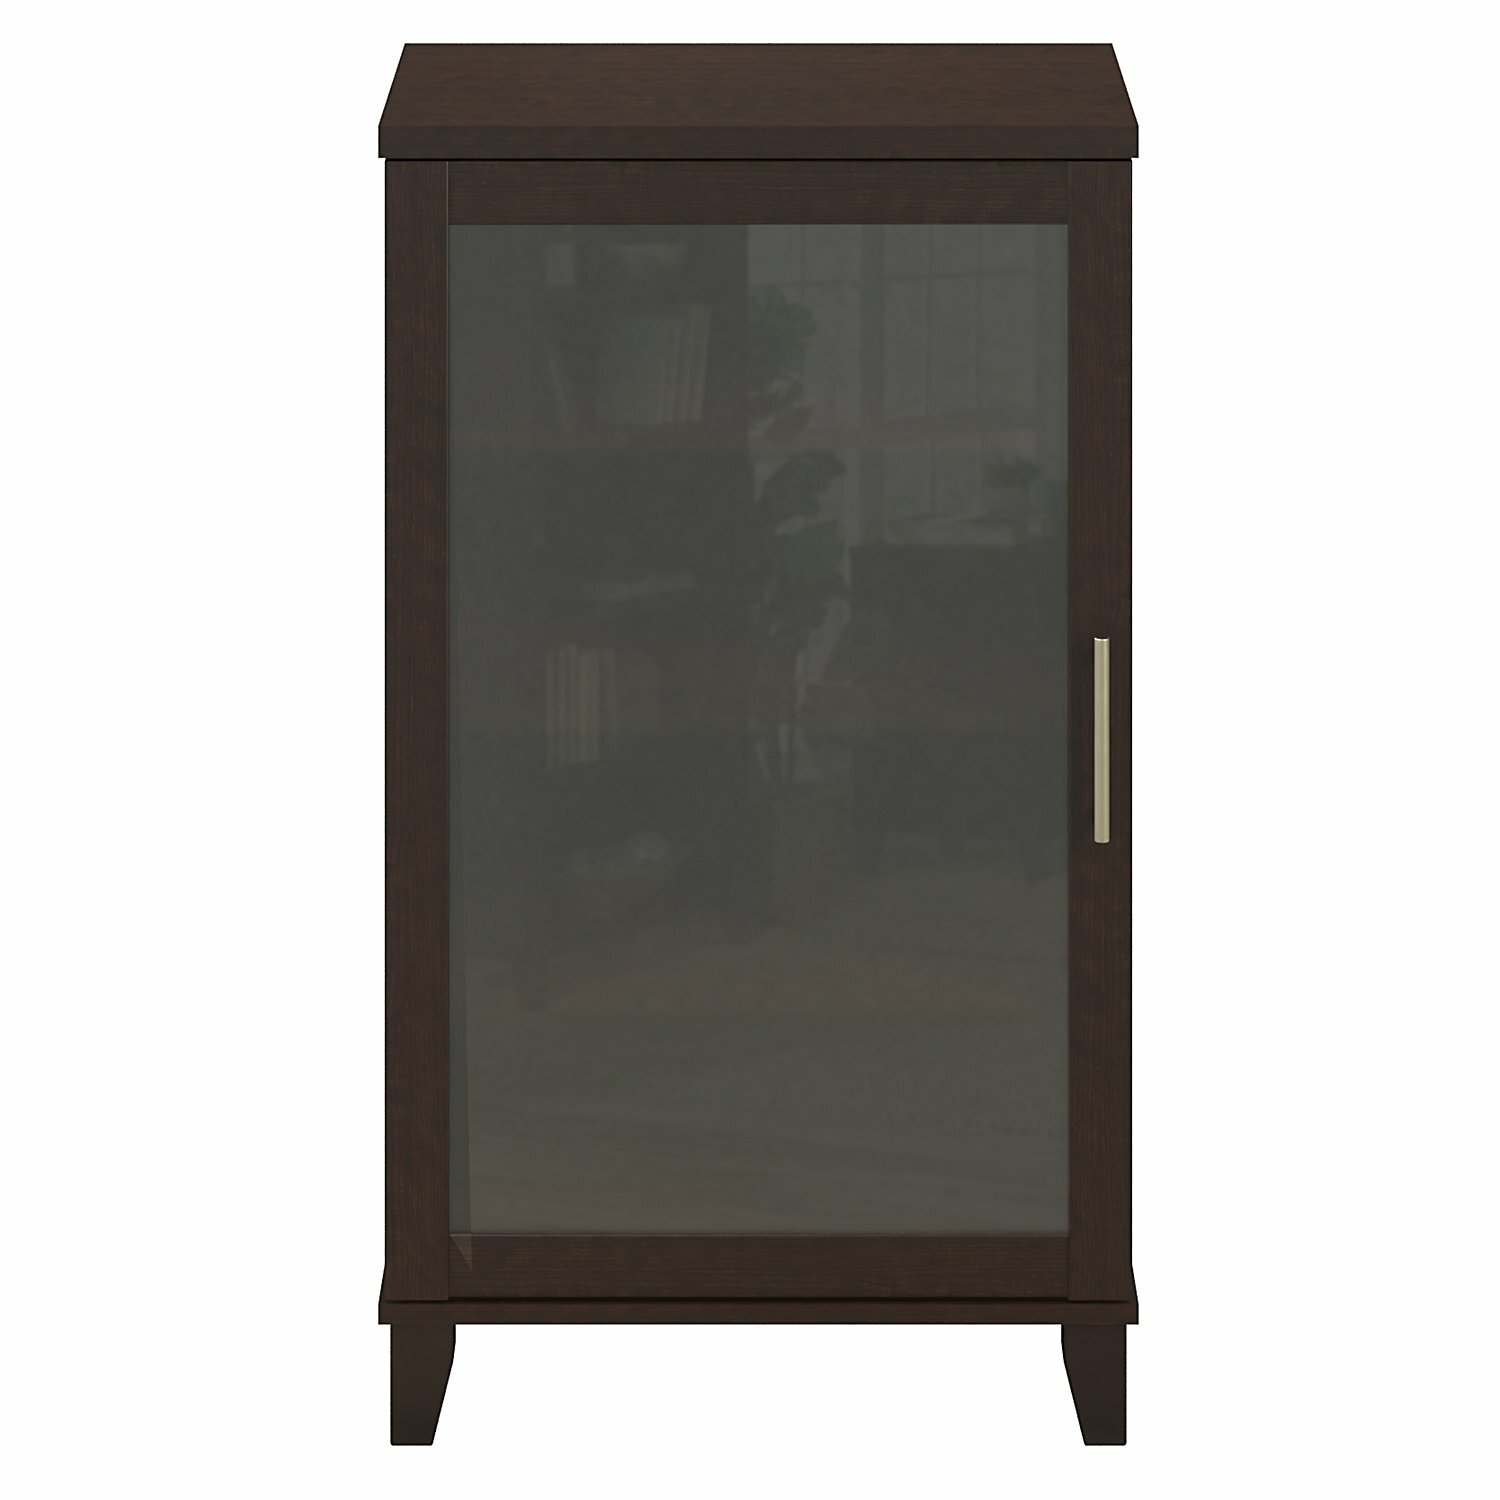 Red barrel studio chase 1 door storage cabinet reviews for 1 door storage cabinet